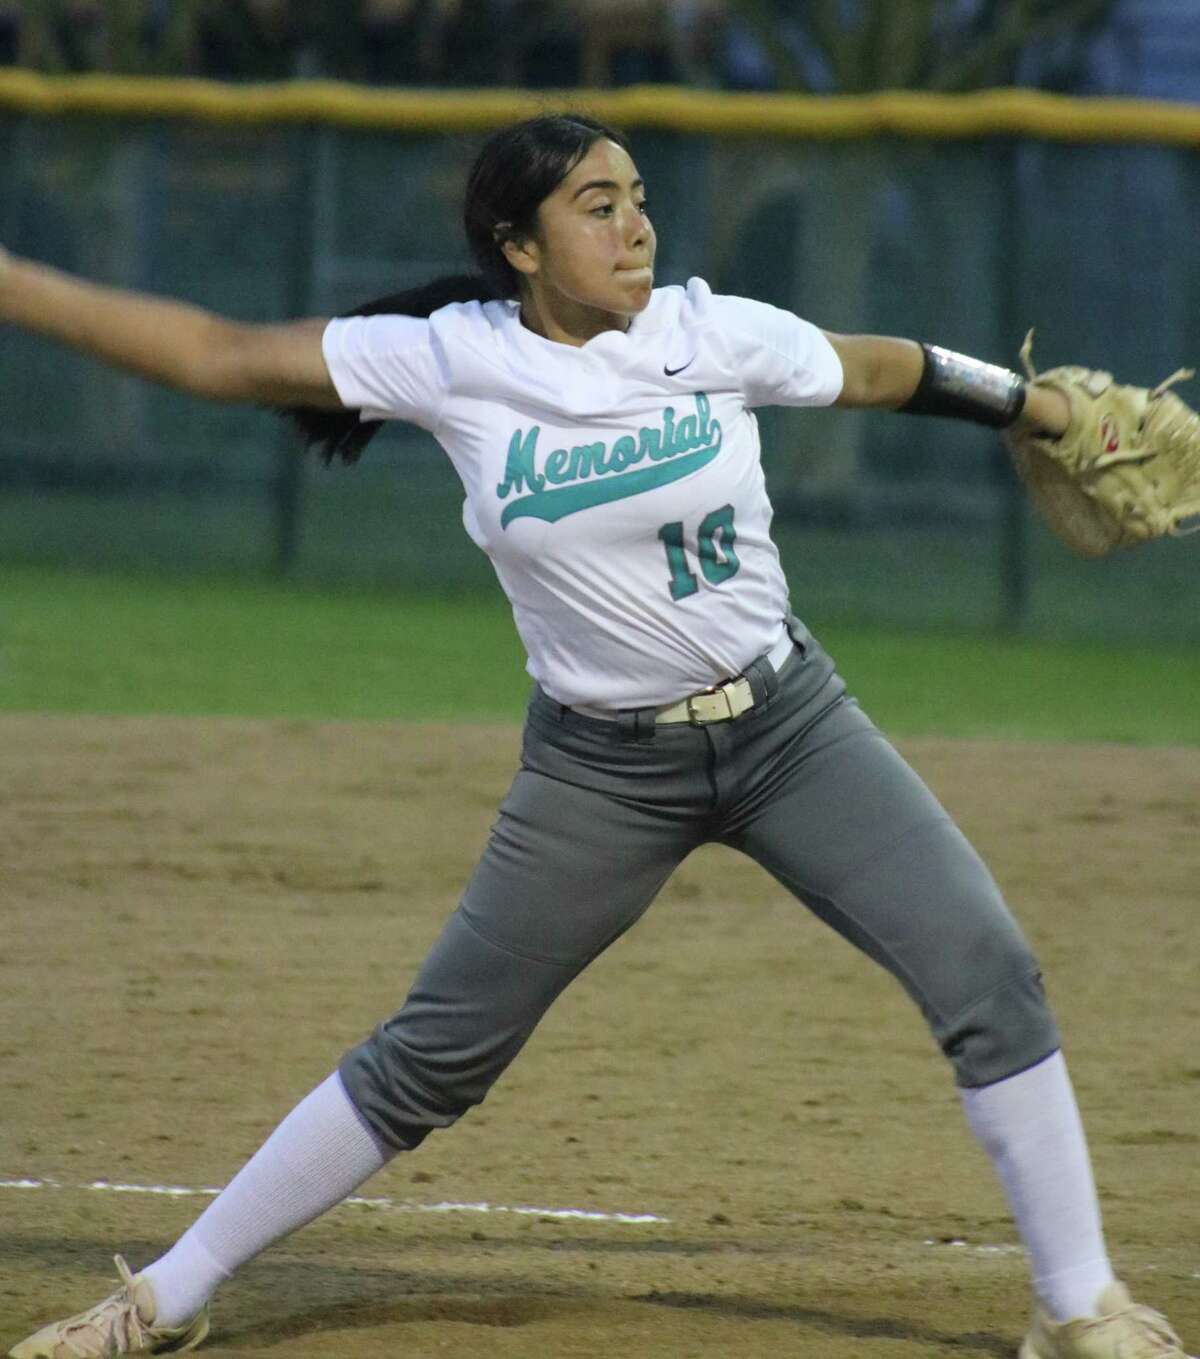 Lady Mavs pitcher Alessandra Borjas captured Second Team All-District honors in this season's shortened campaign.